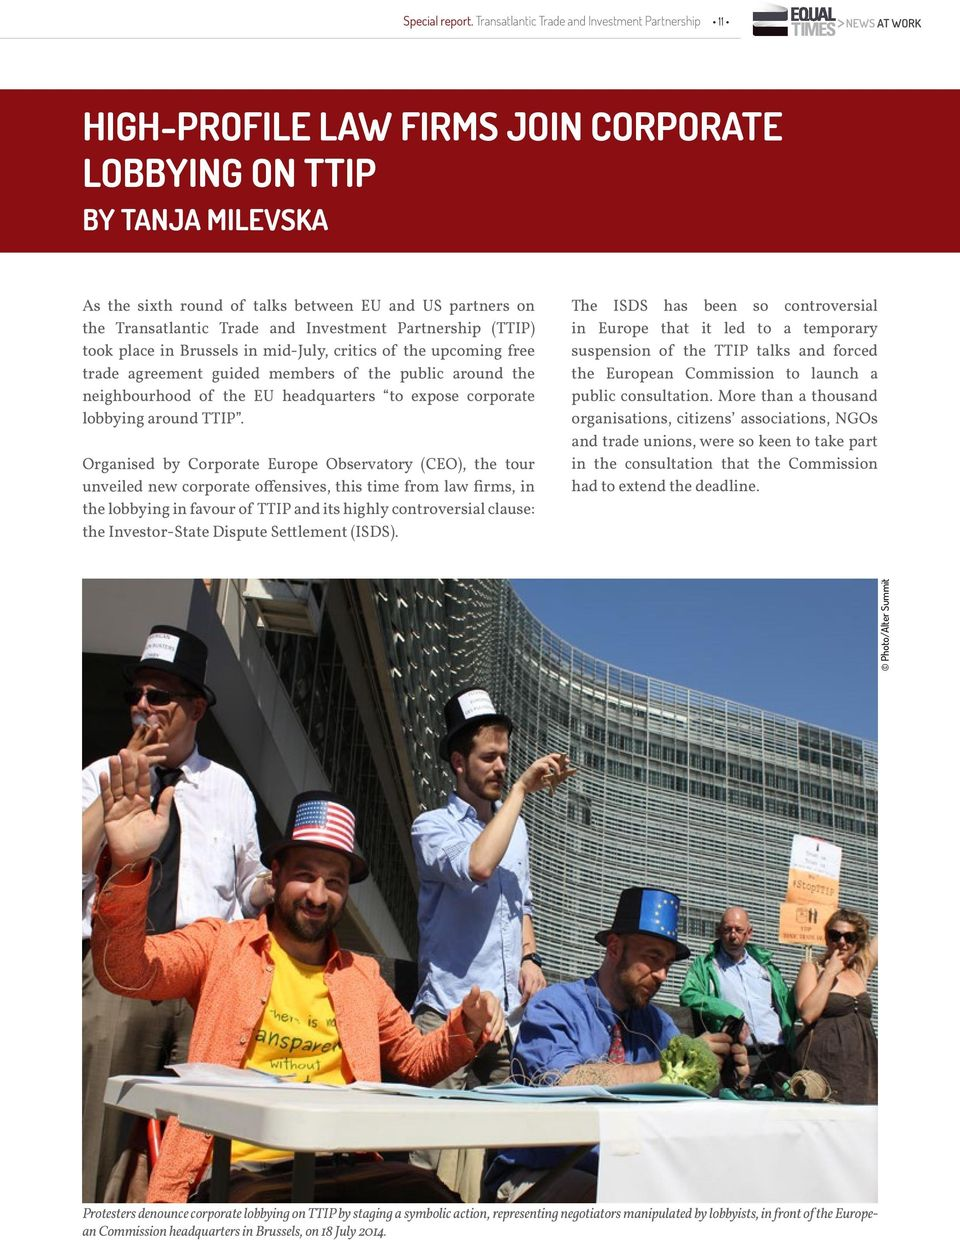 Transatlantic Trade and Investment Partnership (TTIP) took place in Brussels in mid-july, critics of the upcoming free trade agreement guided members of the public around the neighbourhood of the EU